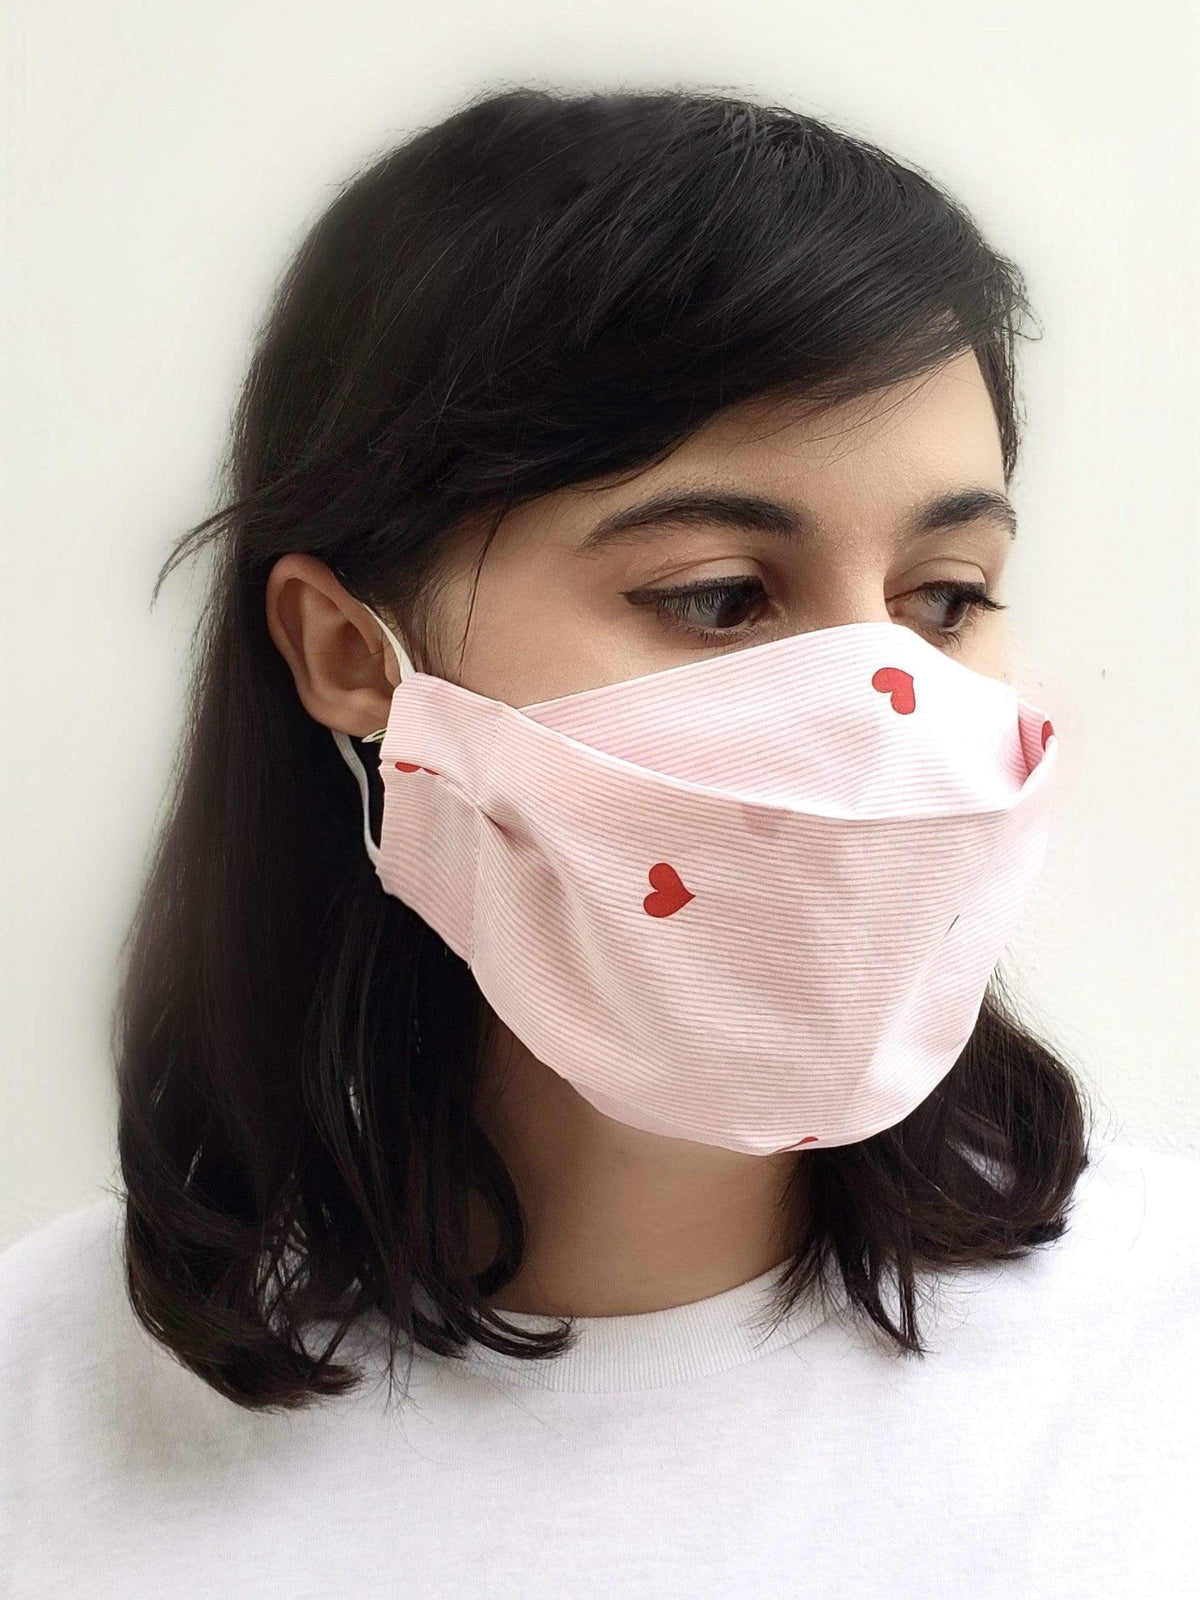 Chloe Dao ACCESSORIES Rose Garden (Box Pleated Mask with Filter Pocket)